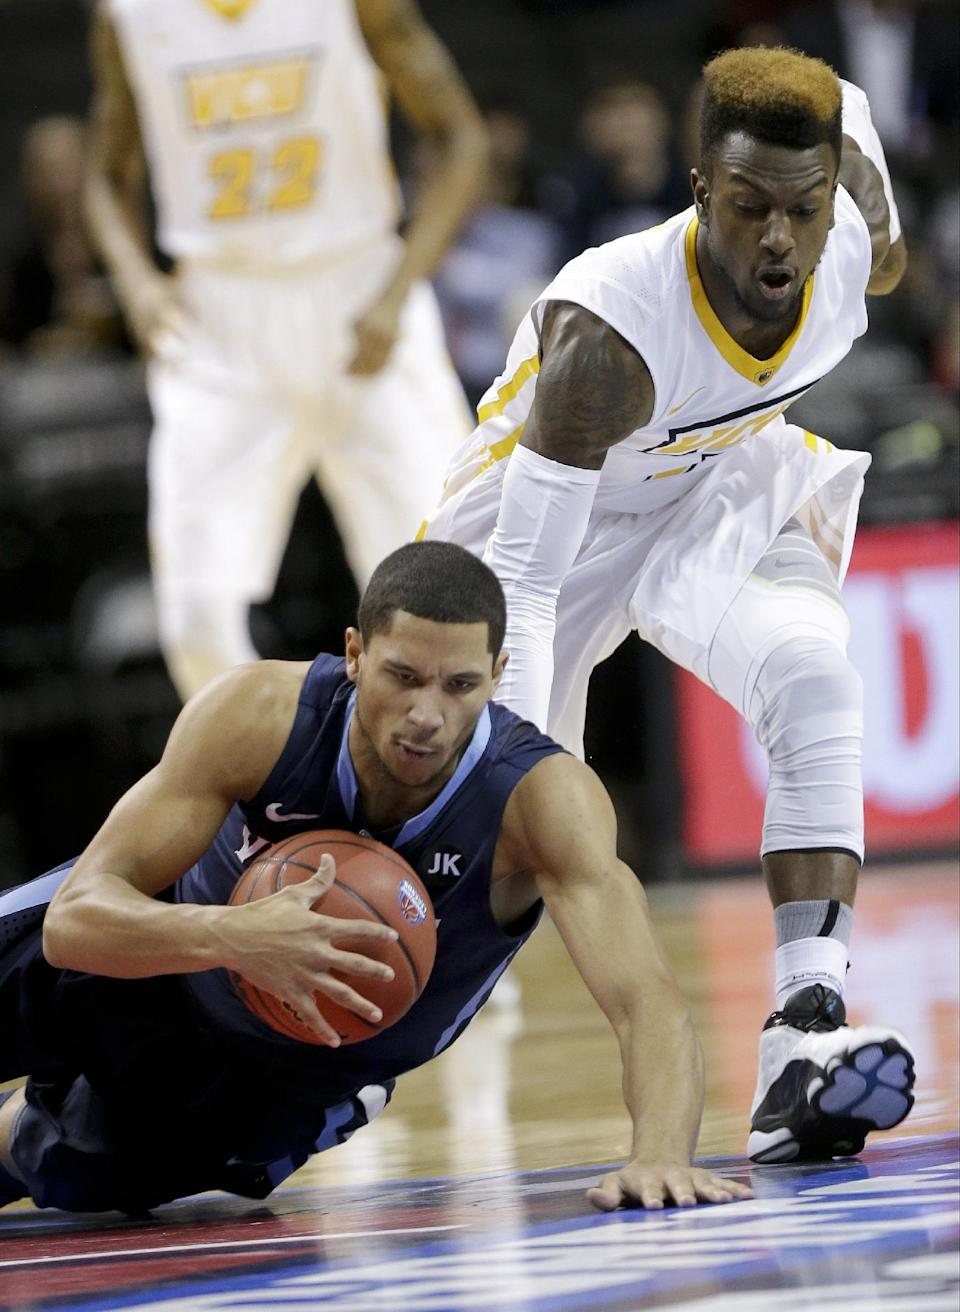 Villanova's Josh Hart, left, loses control of the ball as Virginia Commonwealth's JeQuan Lewis, right, defends during the first half of an NCAA college basketball game Monday, Nov. 24, 2014, in New York. (AP Photo/Frank Franklin II)